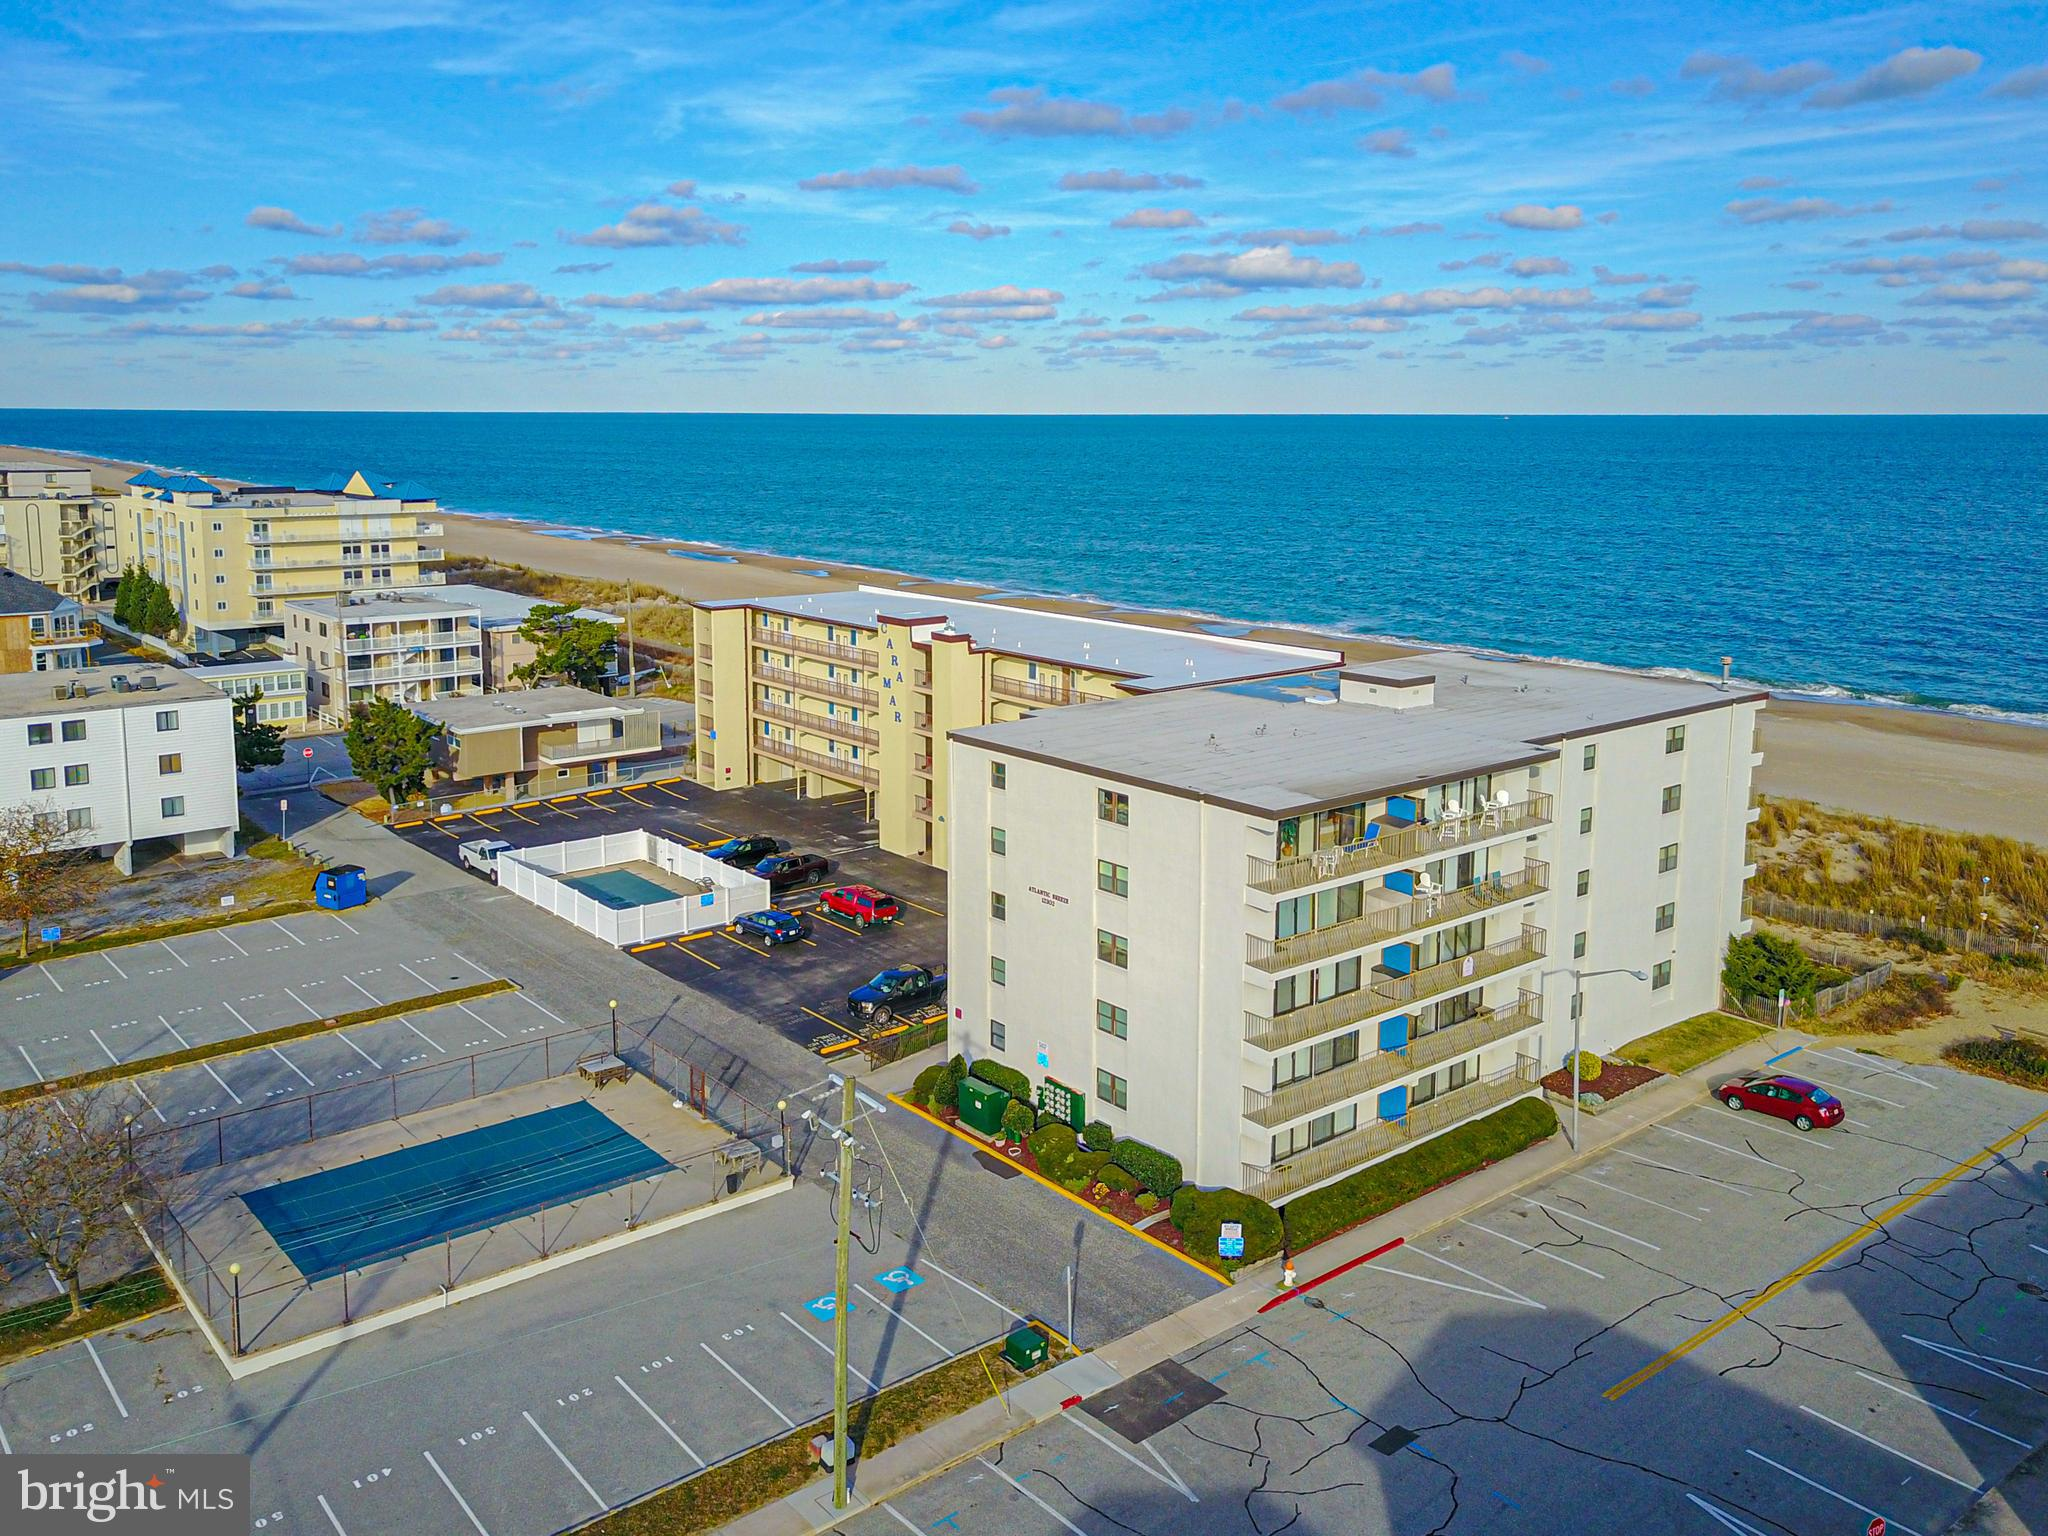 Southern Exposure Condo with Spectacular Ocean Views from your oversized balcony with accessibility from Living room and Master Bedroom.  Masonry building with strong association, Inground Pool, Outside shower, Elevator, Handicapped Ramp, Renovated Kitchen with Island, chair rail, crown molding, tile and more.  Located in clos proximately to Northside Park, Grotto's Pizza, Food Lion, Entertainment and Restaurants.  Plenty of additional parking.  Non-rental but could put in a rental program.  Similar units have Gross Rental Income of 35K per year.